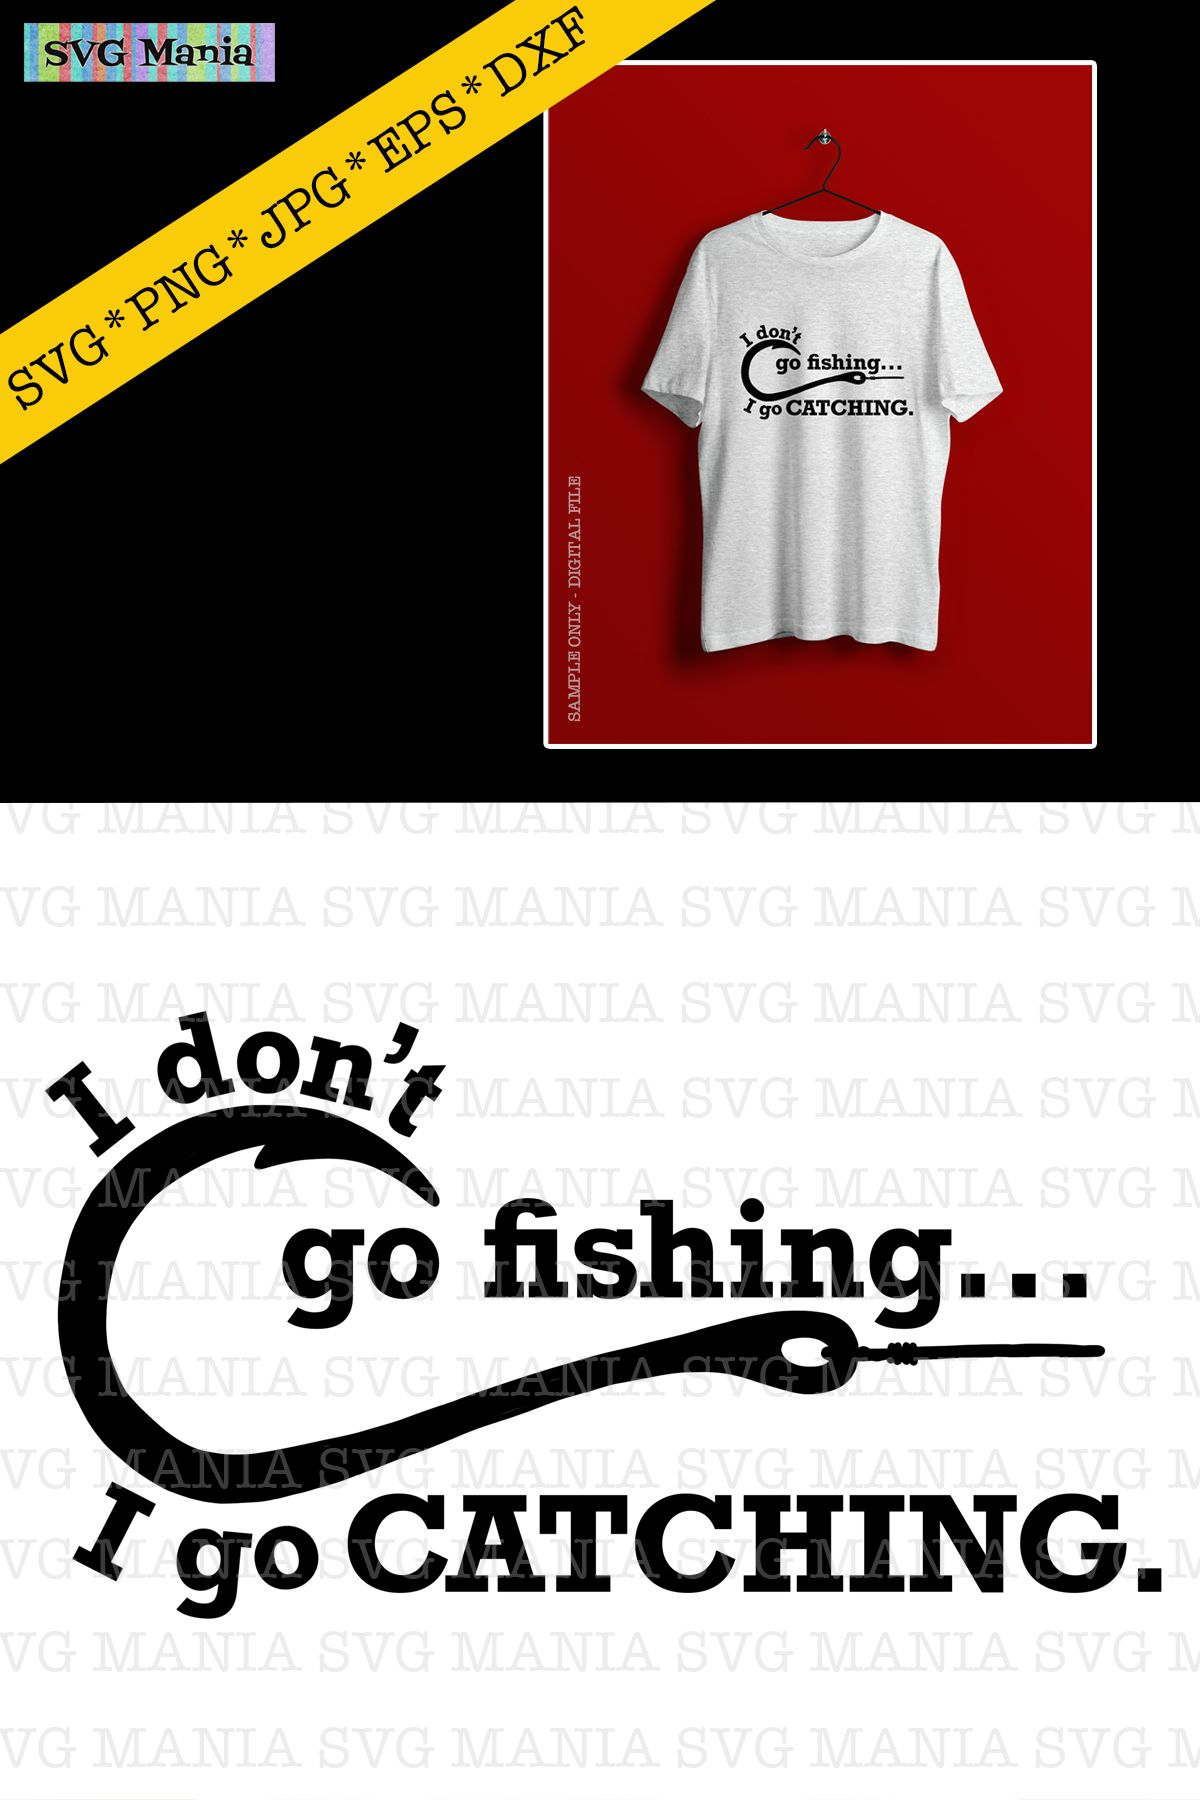 Download Funny Fishing Quote Svg File I Go Catching Svg Files Cricut 379310 Svgs Design Bundles Fishing Quotes Funny Fishing Quotes Couples Fishing Humor